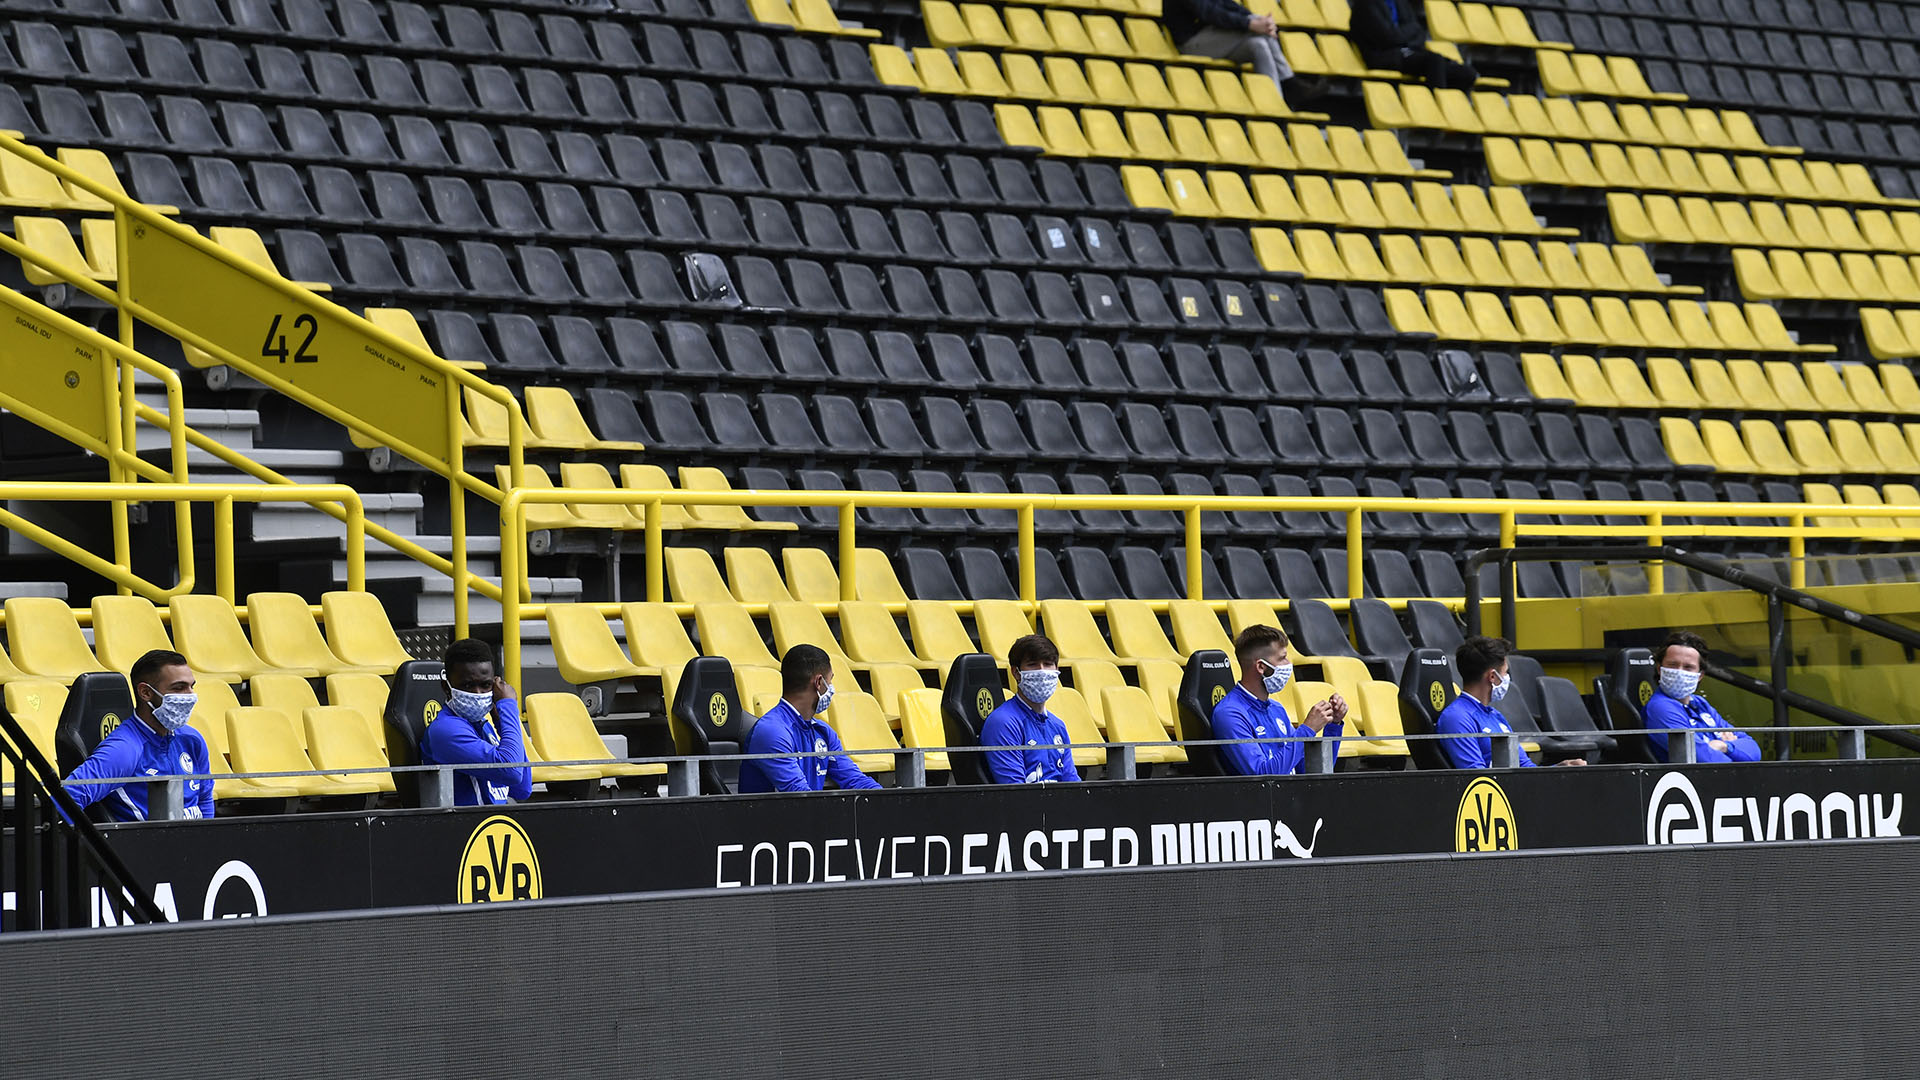 Schalke 04's bench of substitutes (AP Photo / Martin Meissner, Pool)